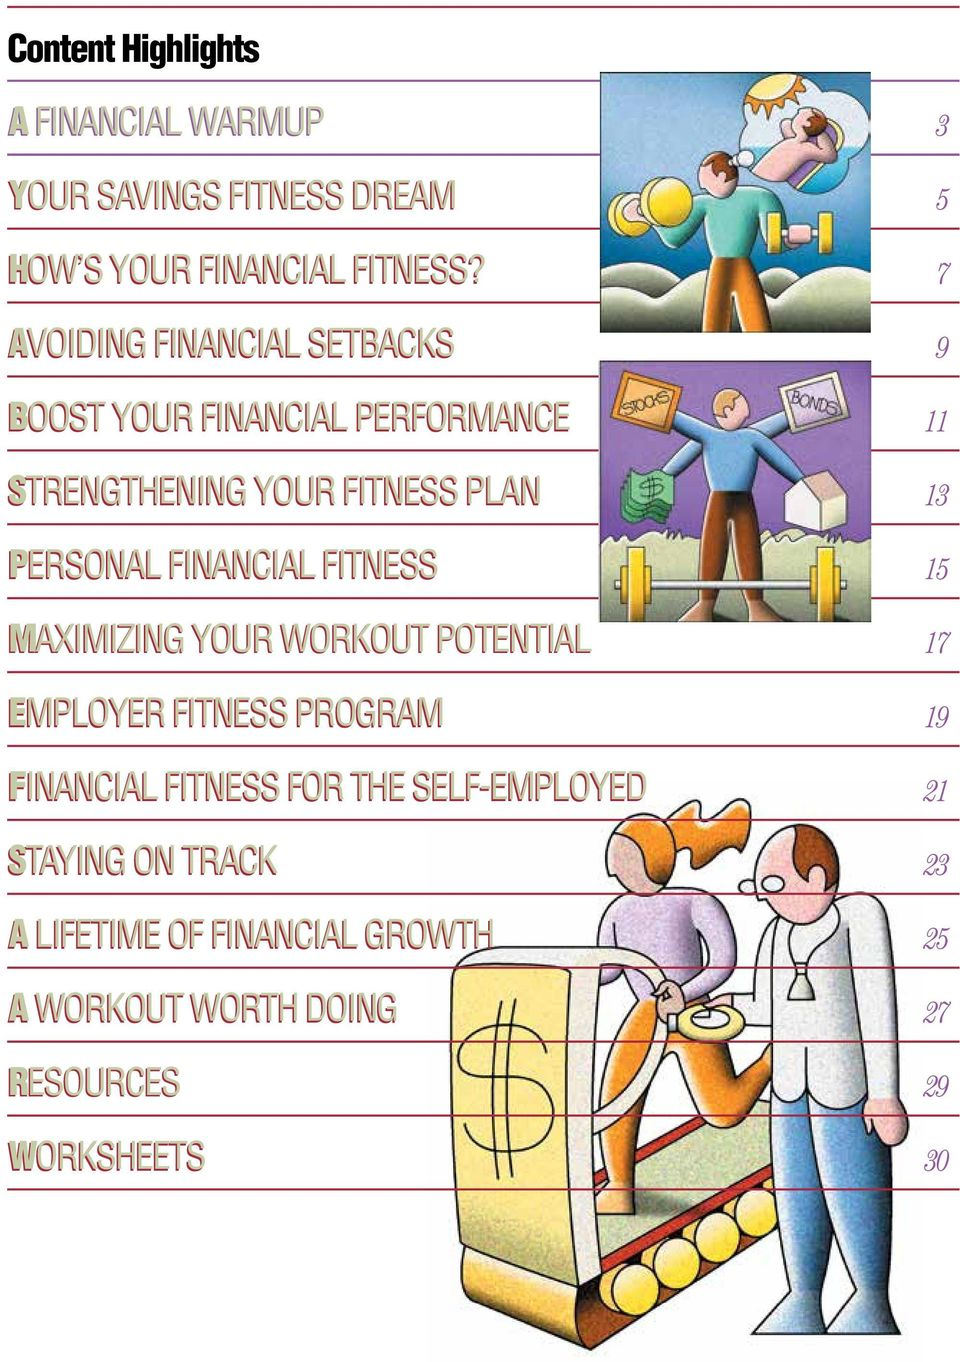 FINANCIAL FITNESS 15 MAXIMIZING YOUR WORKOUT POTENTIAL 17 EMPLOYER FITNESS PROGRAM 19 FINANCIAL FITNESS FOR THE